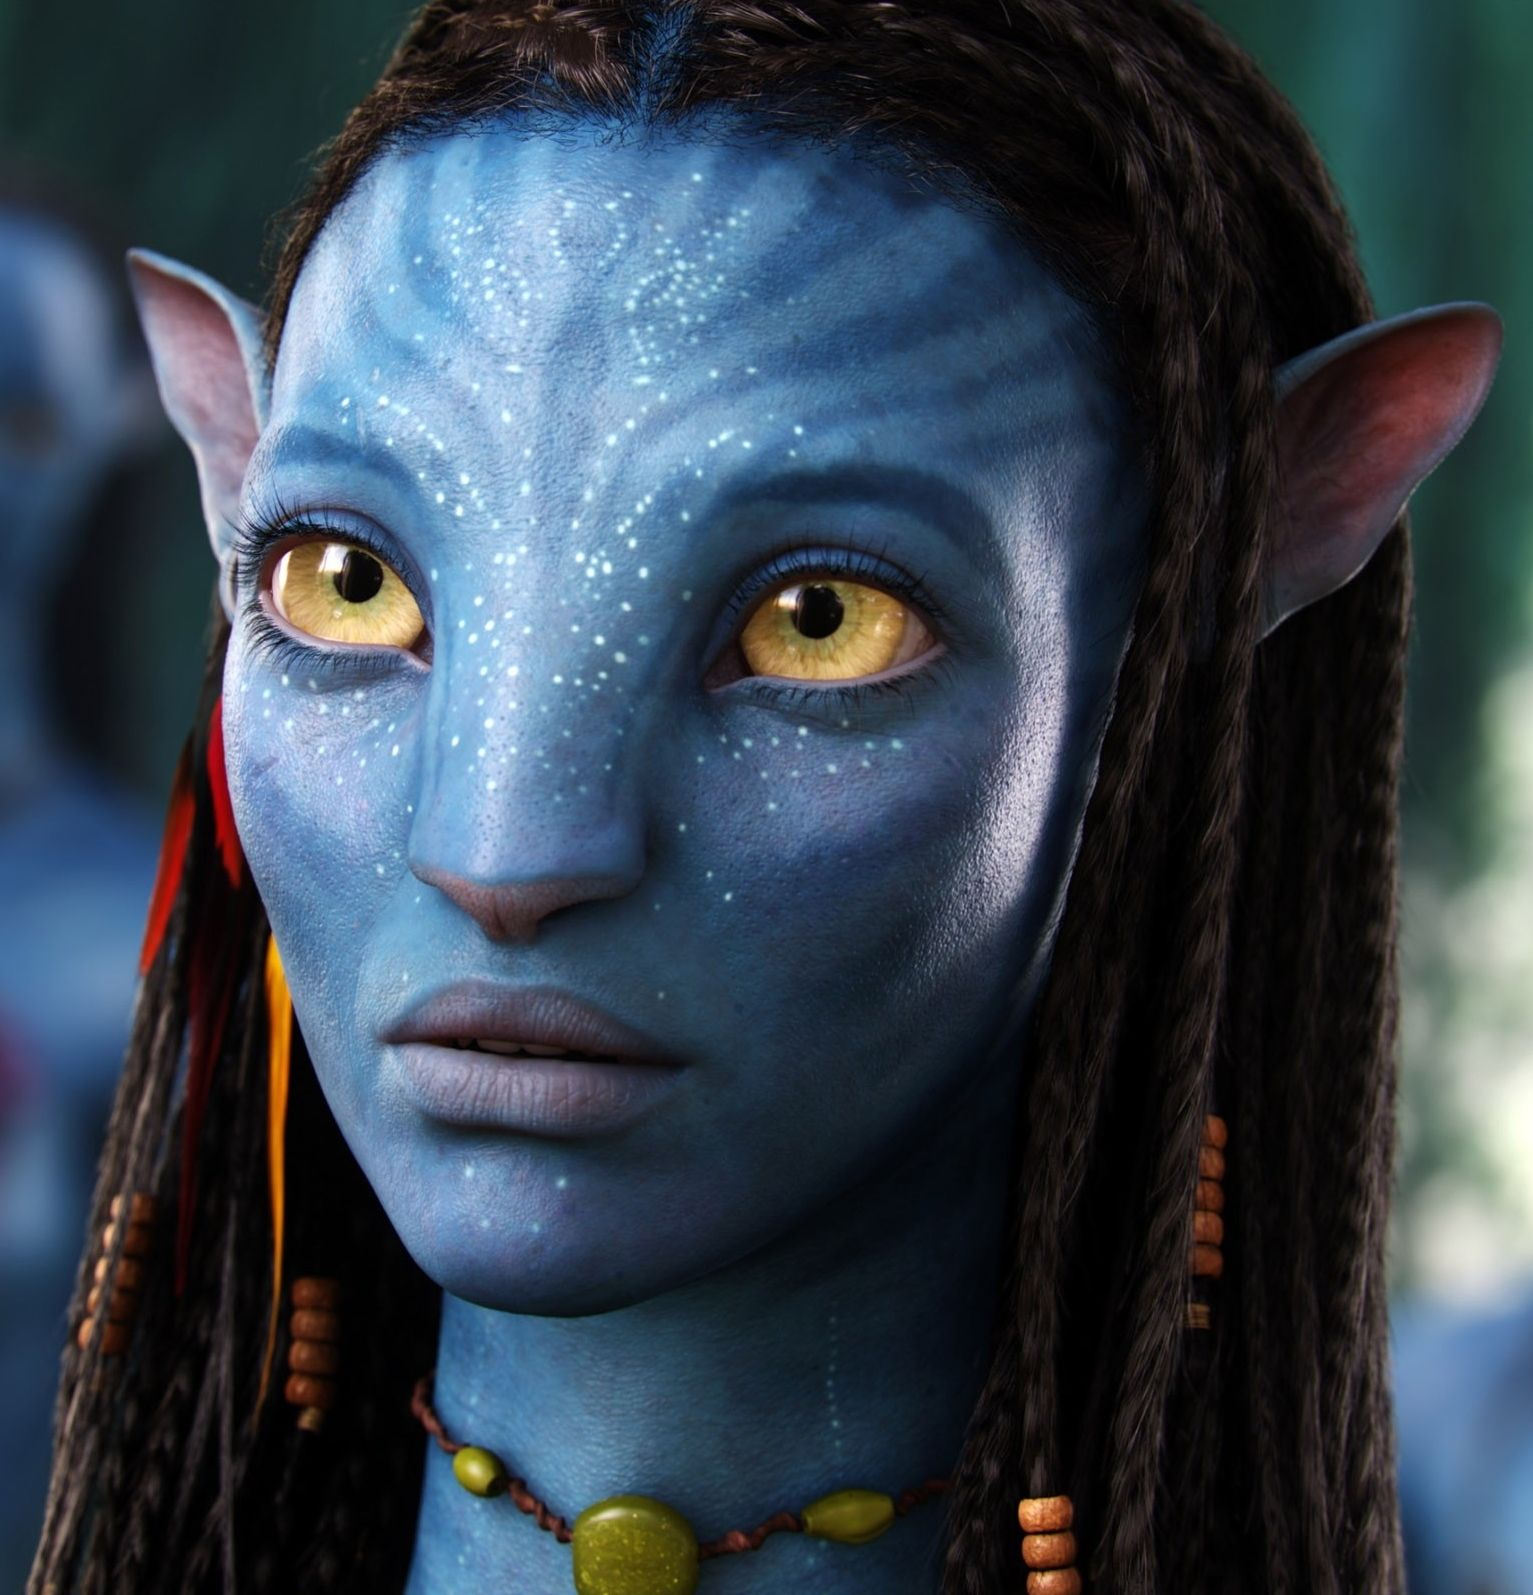 Avatar Movie: Neytiri(Avatar) Played By Zoe Saldana